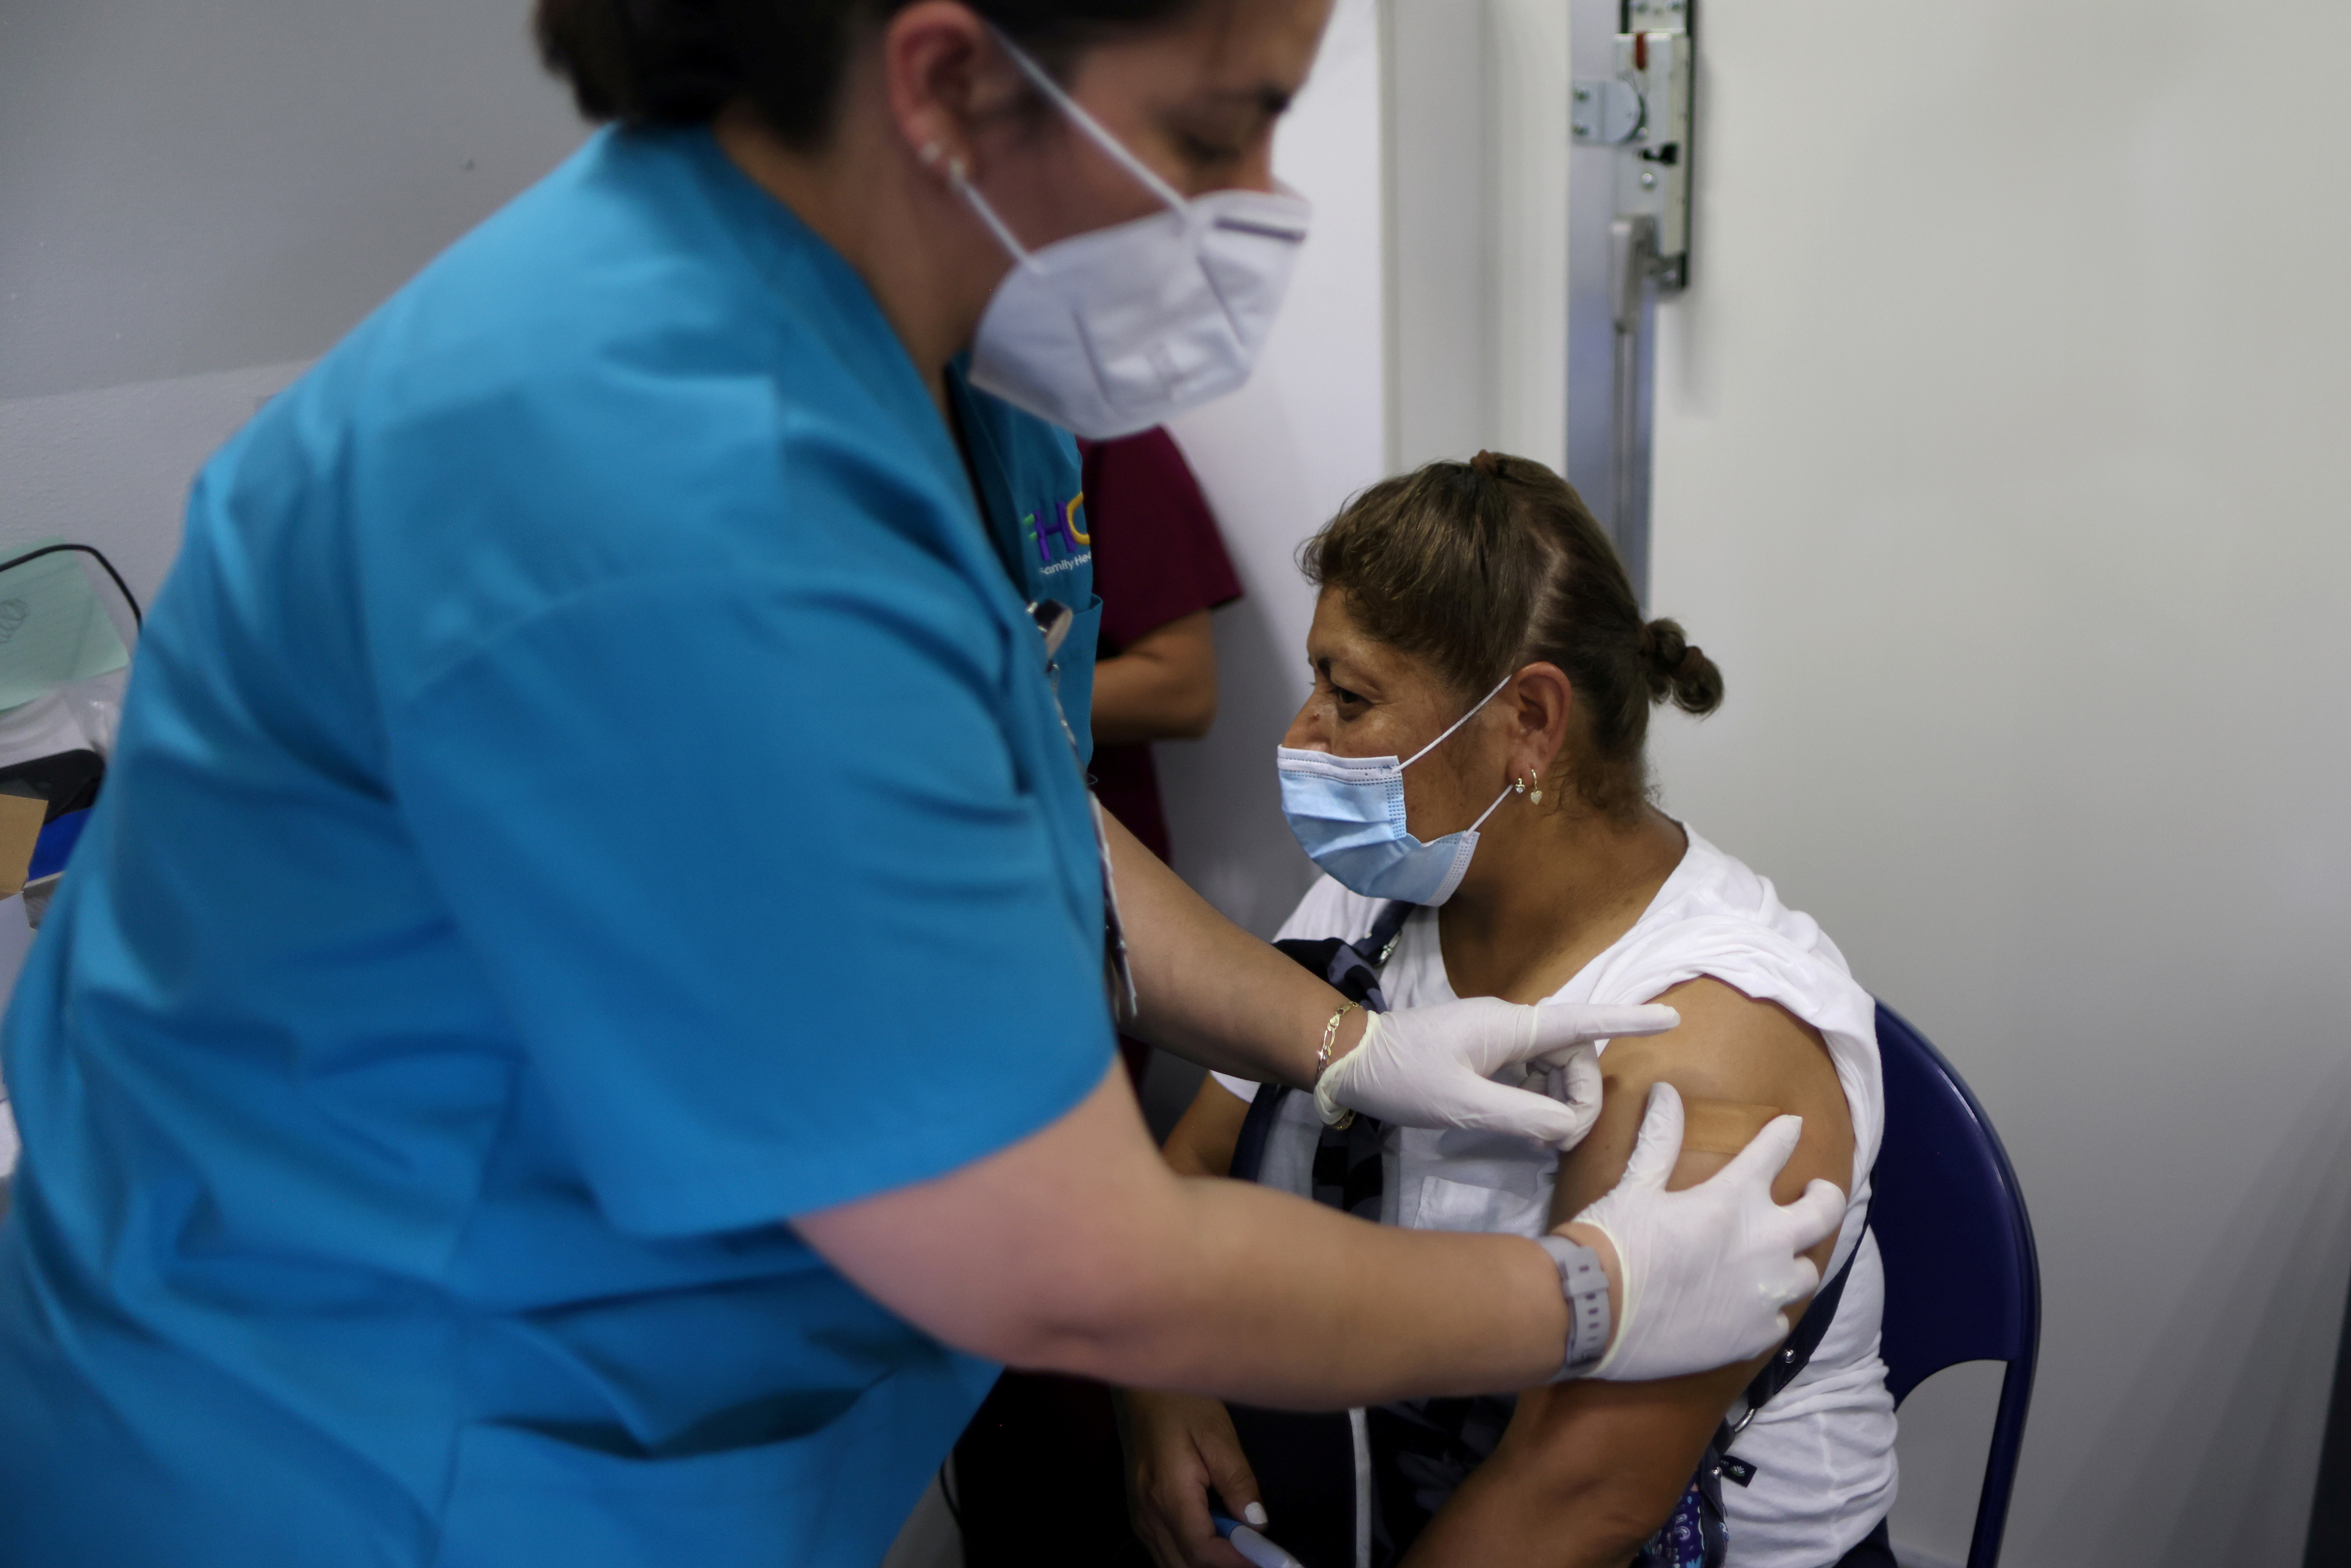 Olga Orduna, 46, receives her second coronavirus disease (COVID-19) vaccine at a back-to-school clinic in South Gate, Los Angeles, California, U.S., August 12, 2021. REUTERS/Lucy Nicholson